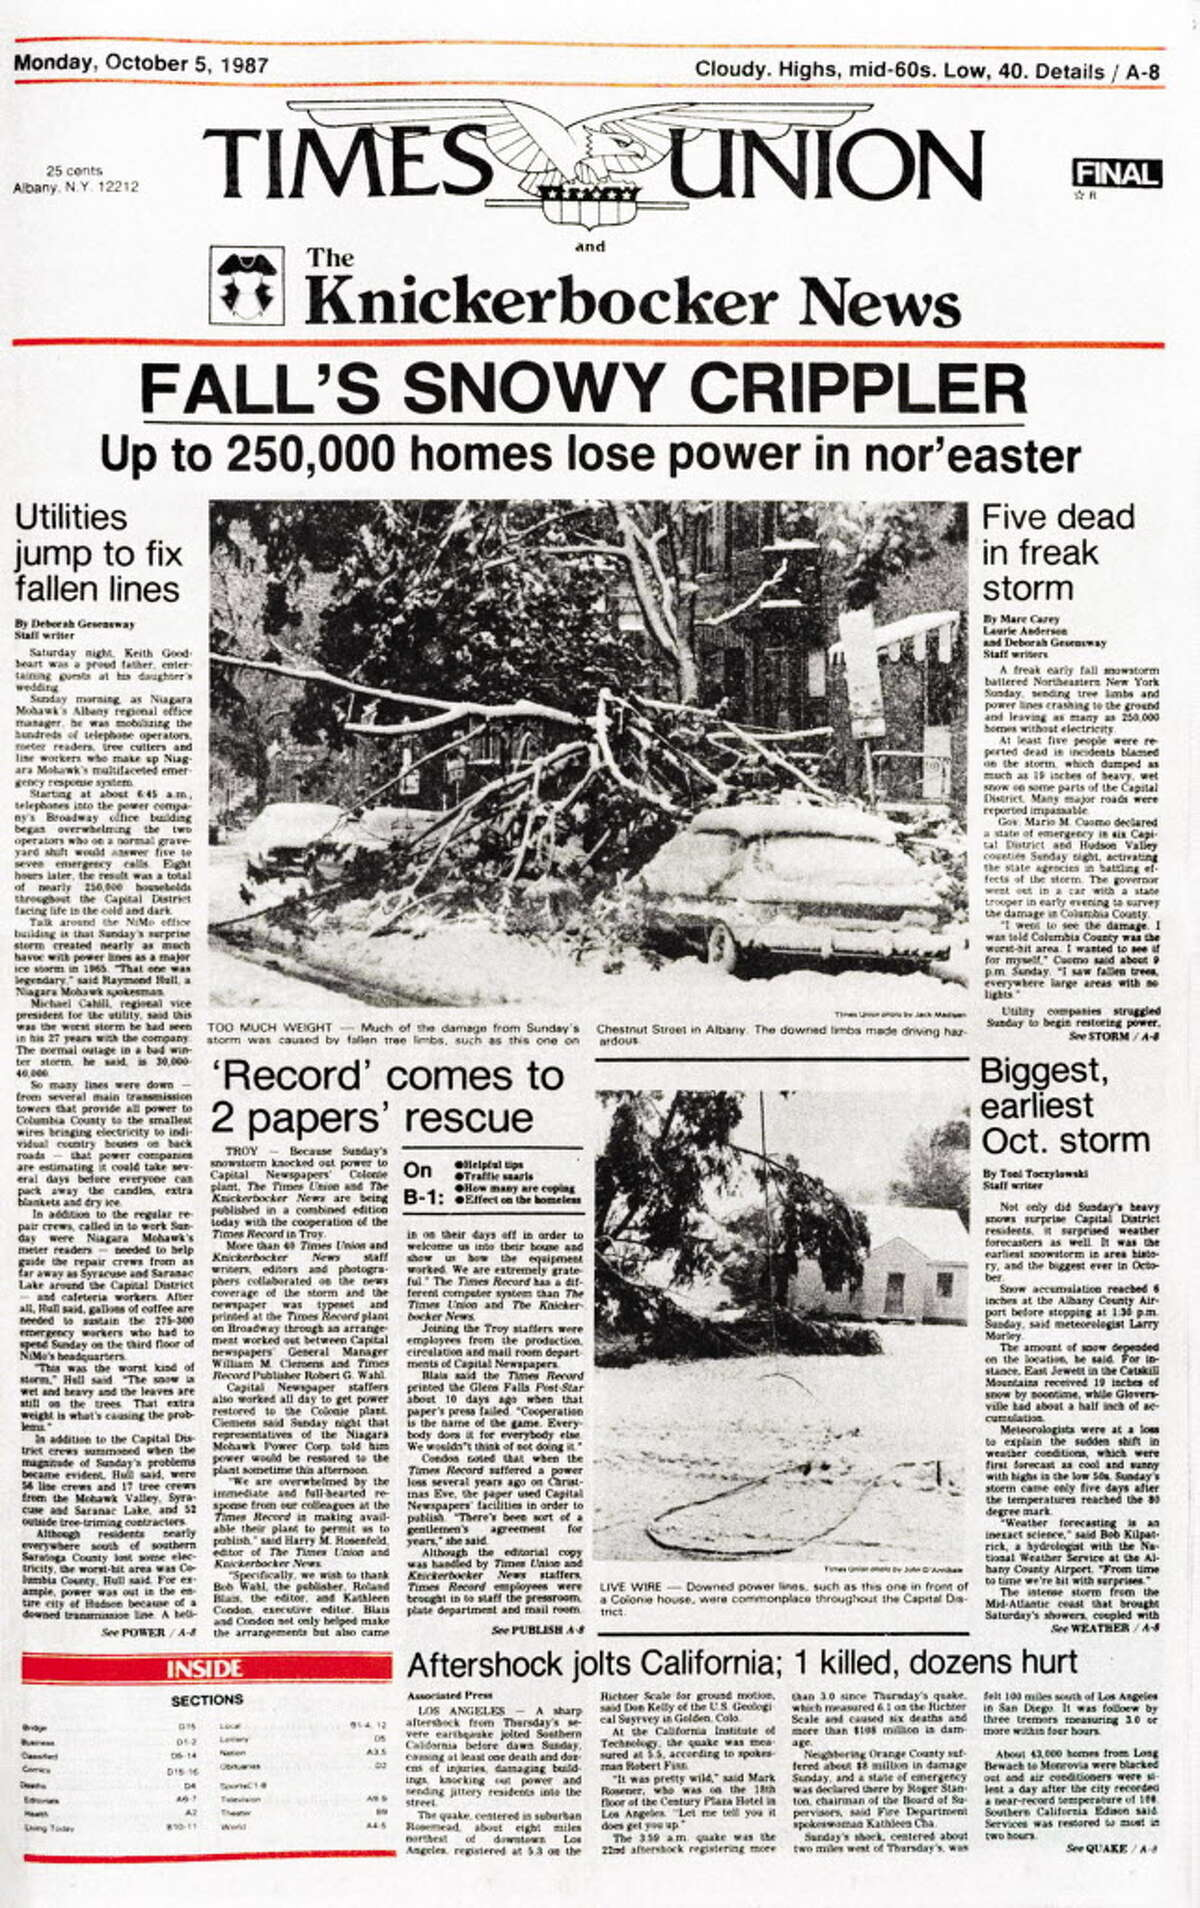 The front page of the combined issue of the Times Union and the Knickerbocker News covering the freak snowstorm on Oct. 4, 1987. The storm wiped out power, including to the Capital Region's newspapers.